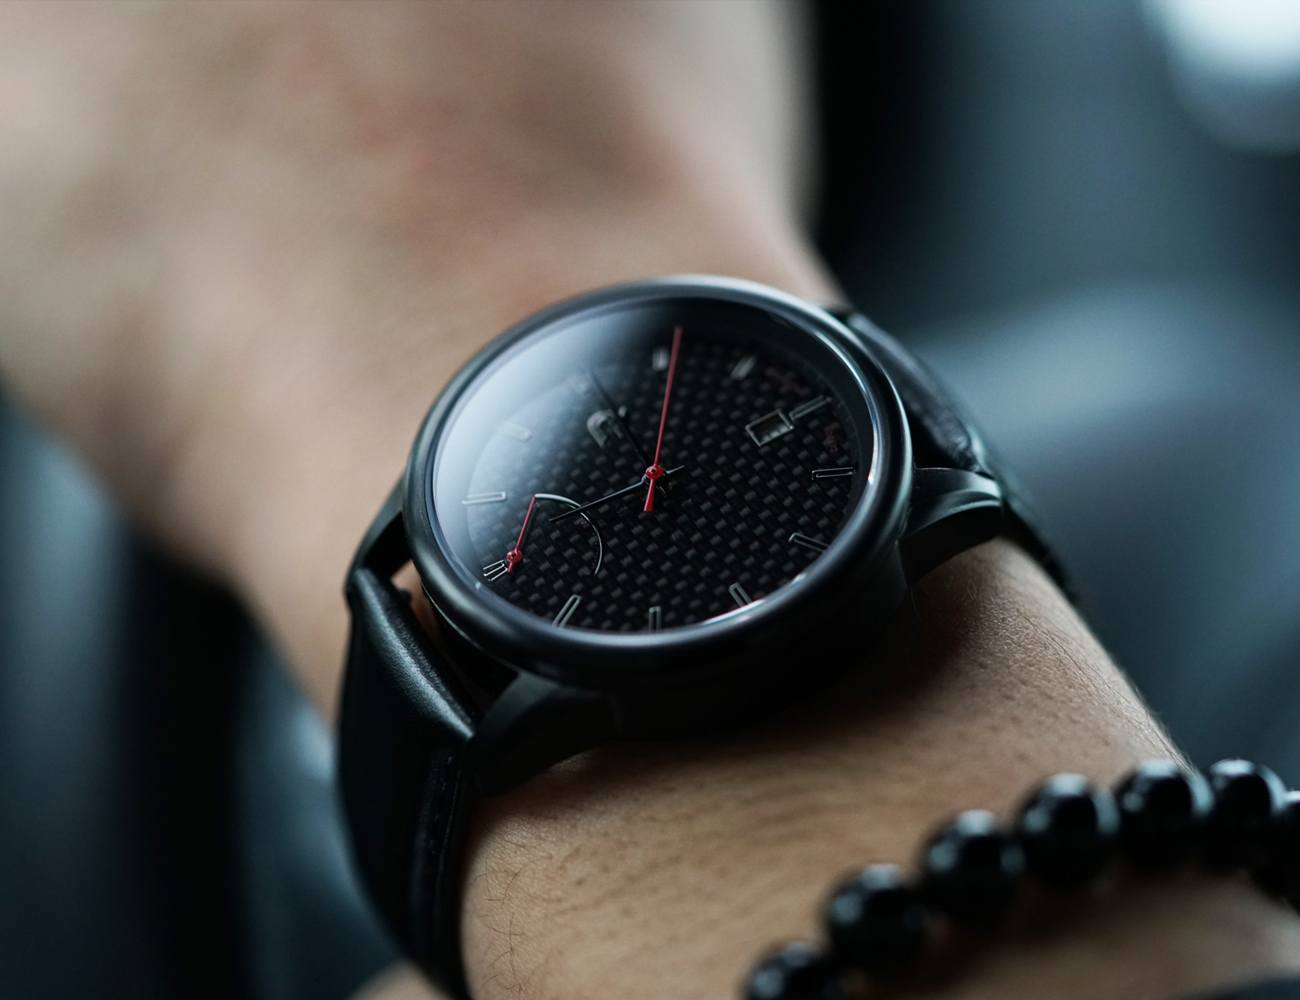 Auto – Automatic Watch Series inspired by Carbon Fiber